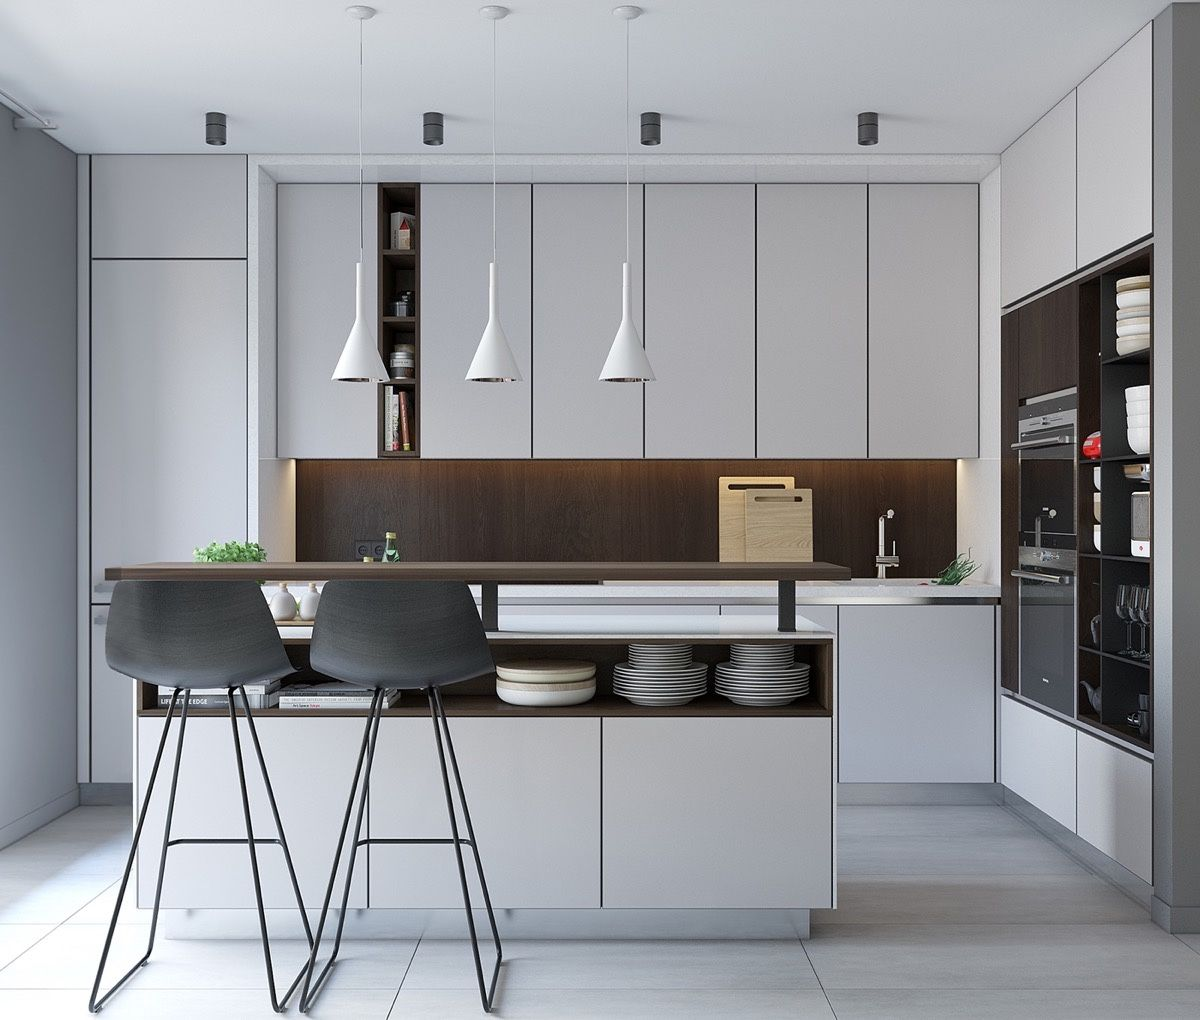 5 Modern Kitchen Designs That Use Unconventional Geometry